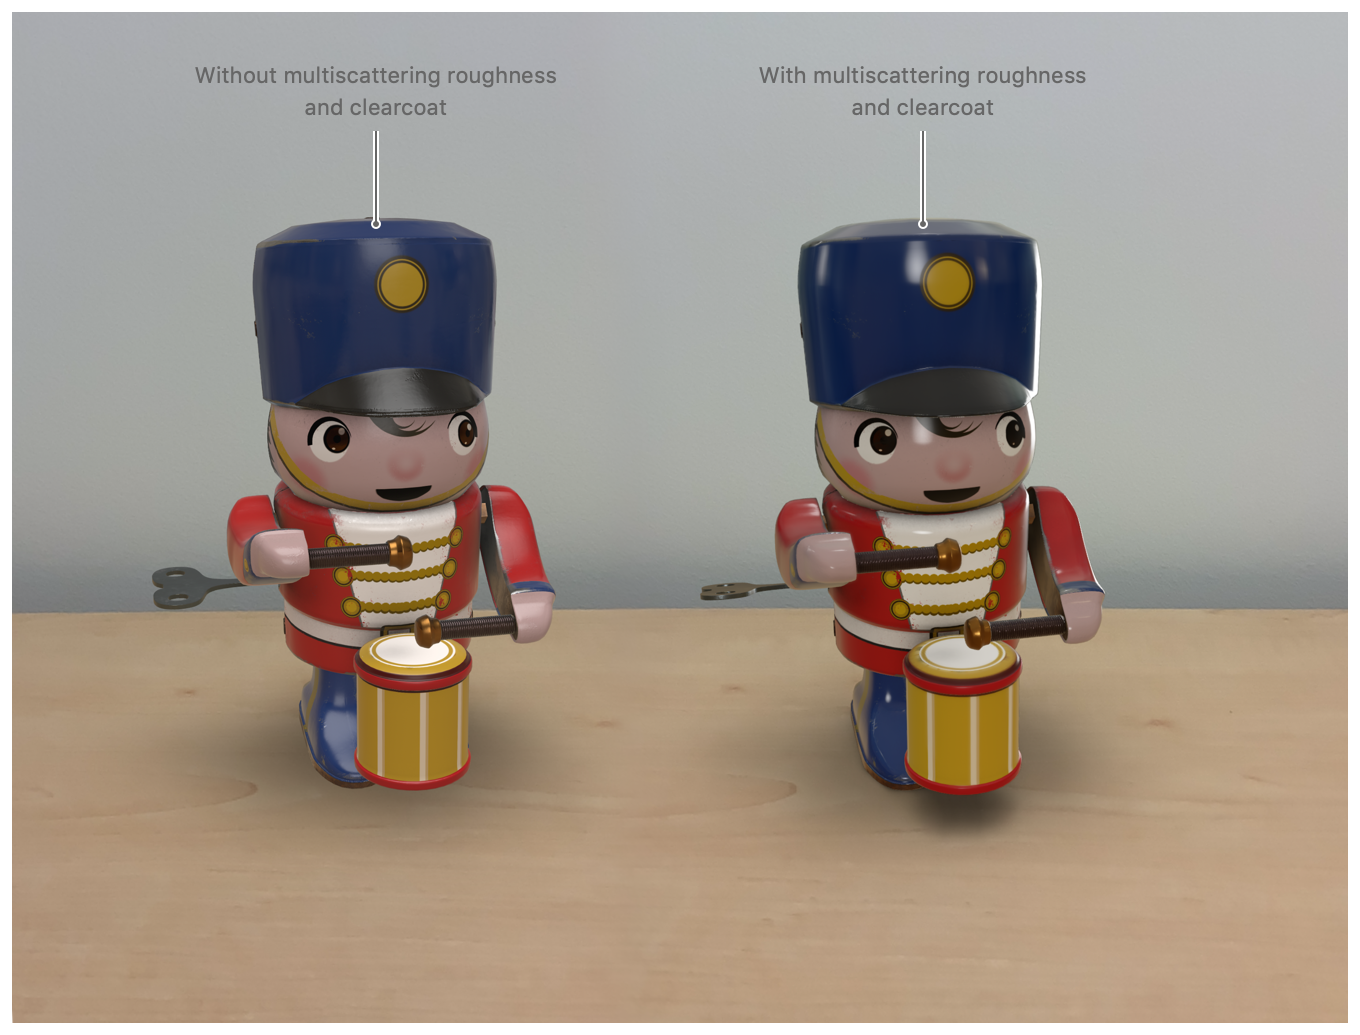 Screenshot of two wooden toys side-by-side to demonstrate the effect of adding the model features. The image of the toy on the left is pictured without multiscattering roughtness and clearcoat; the image of the toy on the right uses multiscattering roughness and clearcoat.